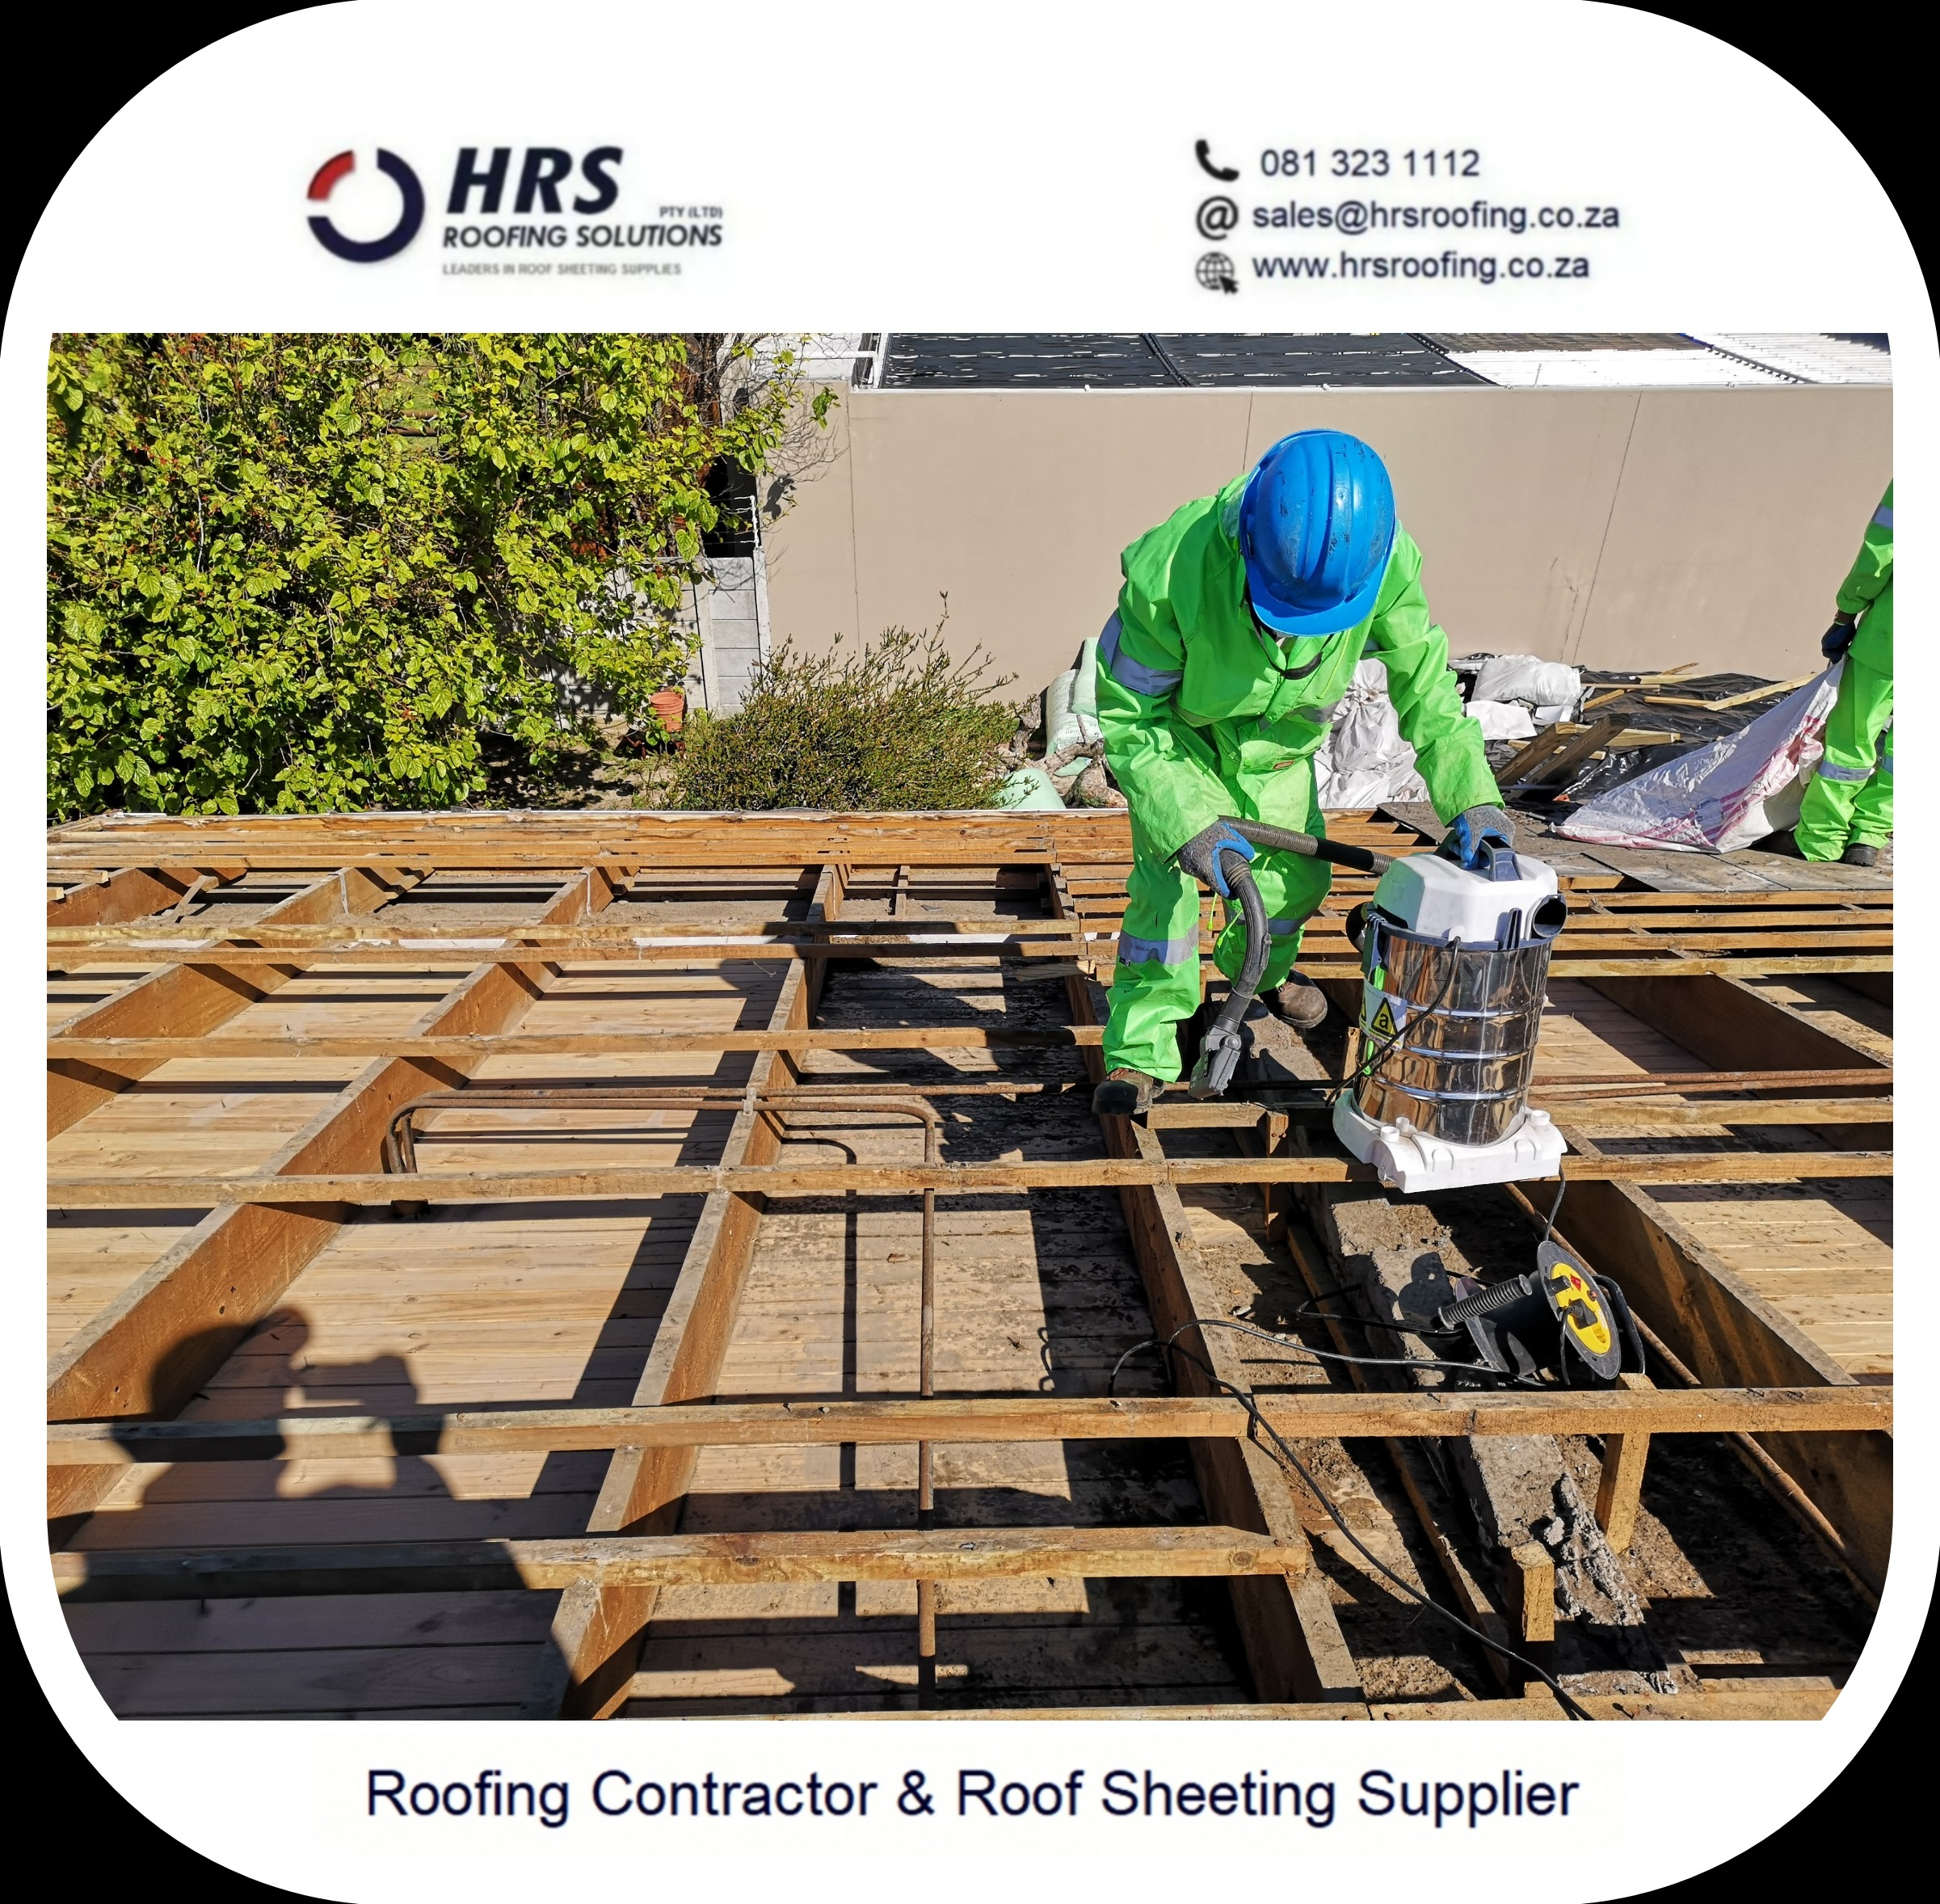 hrs roofing solutions Asbestos Contractor cape Town - Roofing Gallery